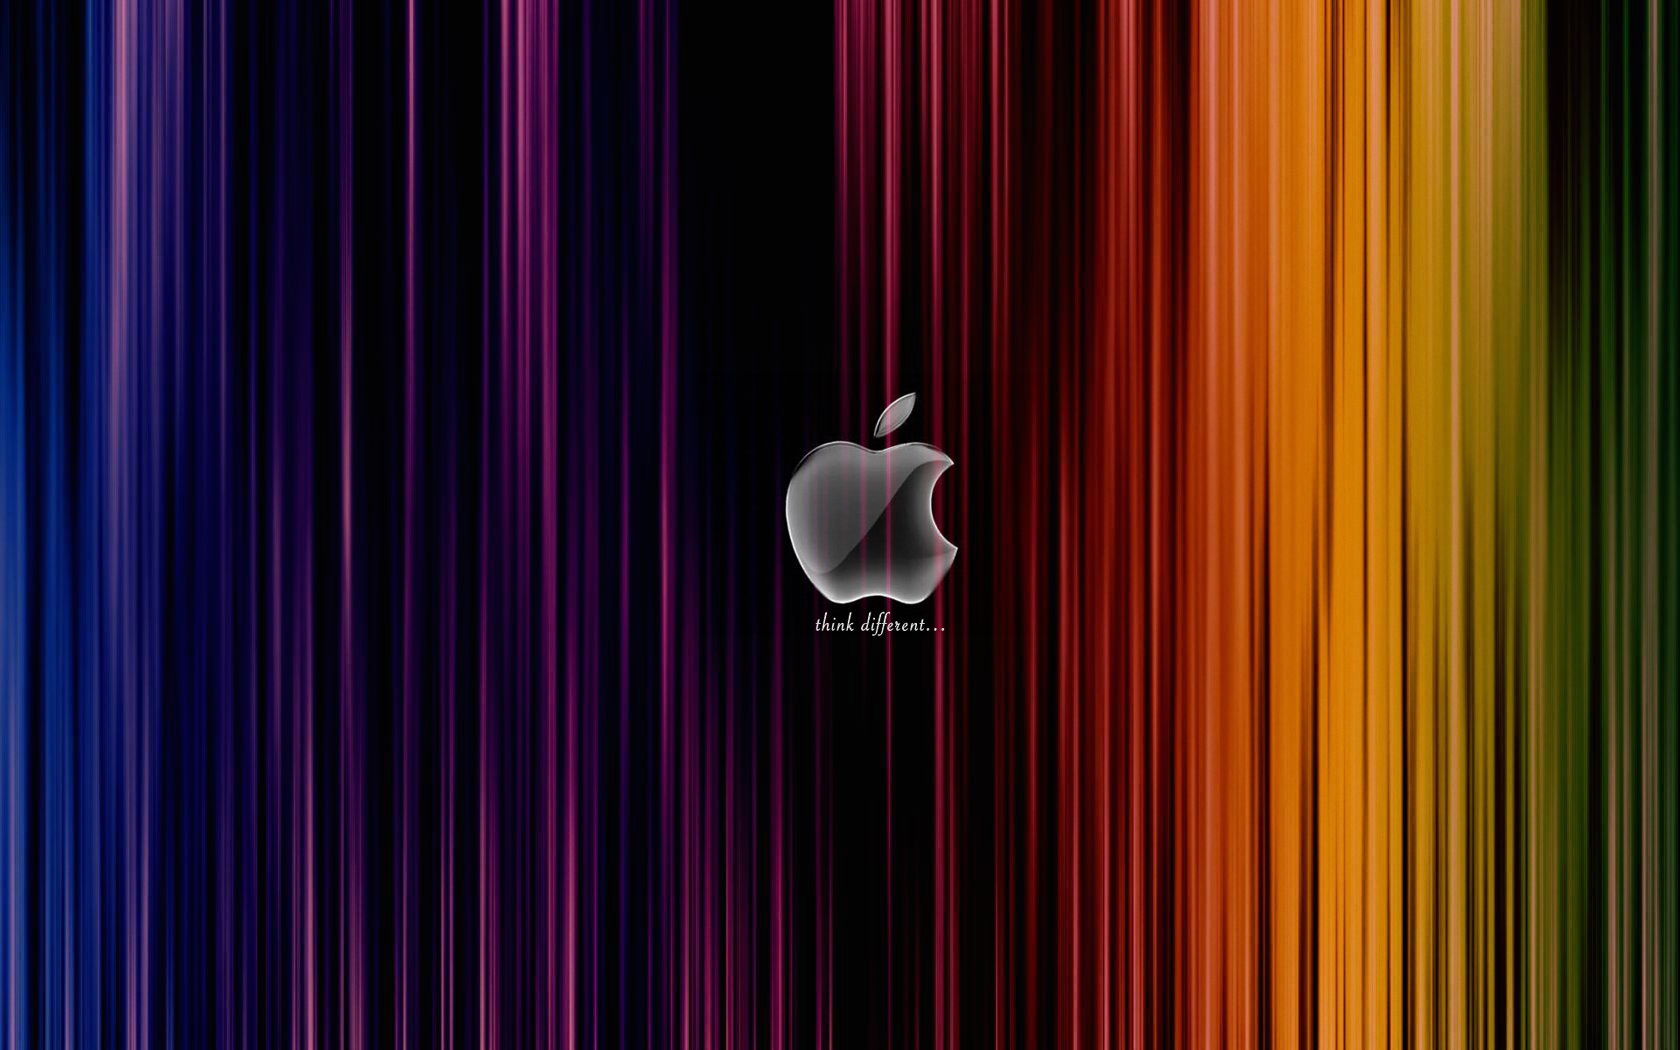 Apple-think different by arthursmith